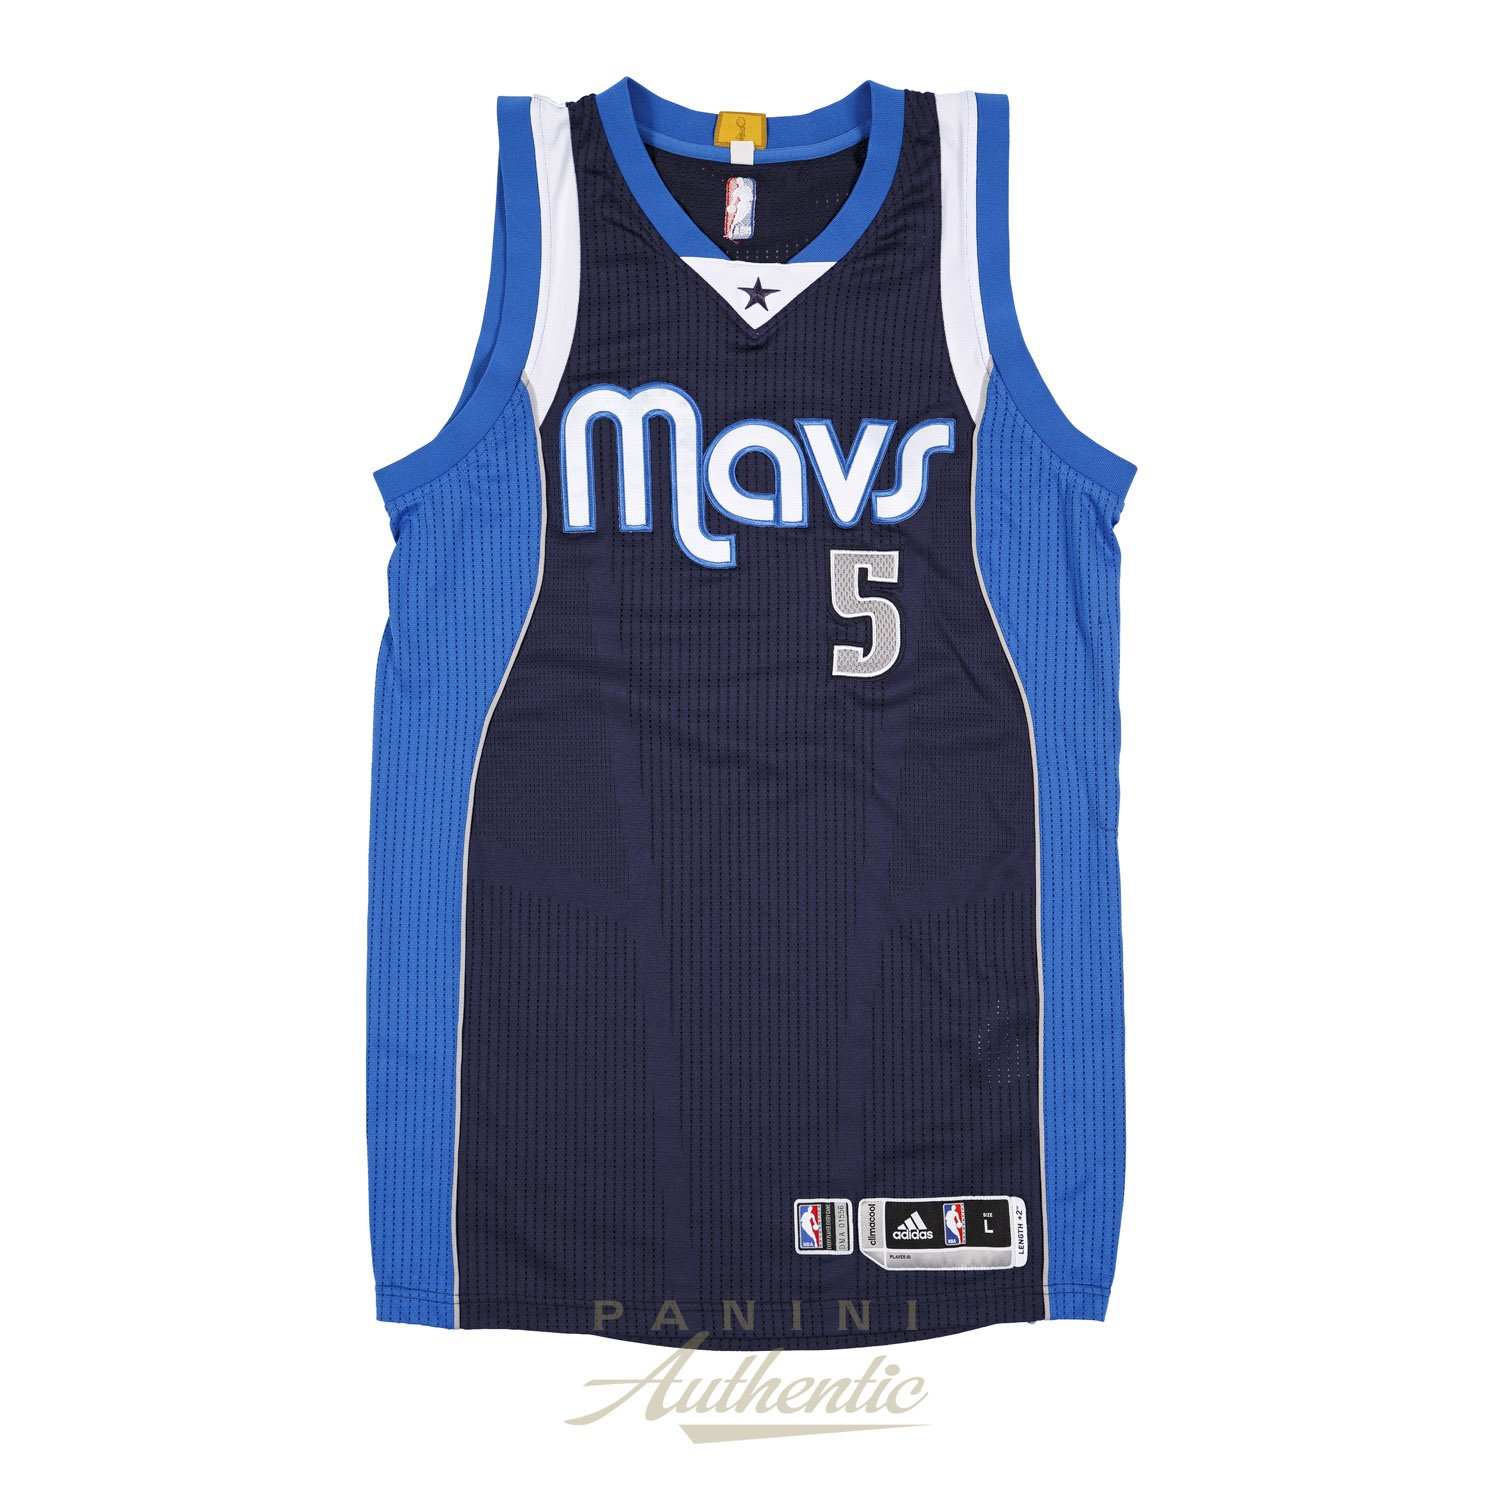 JJ Barea Game Autographed Worn Dallas Mavericks Navy Jersey From 14-15  Regular Season ~Limited Edition 1 1~ at Amazon s Sports Collectibles Store 53804da5c